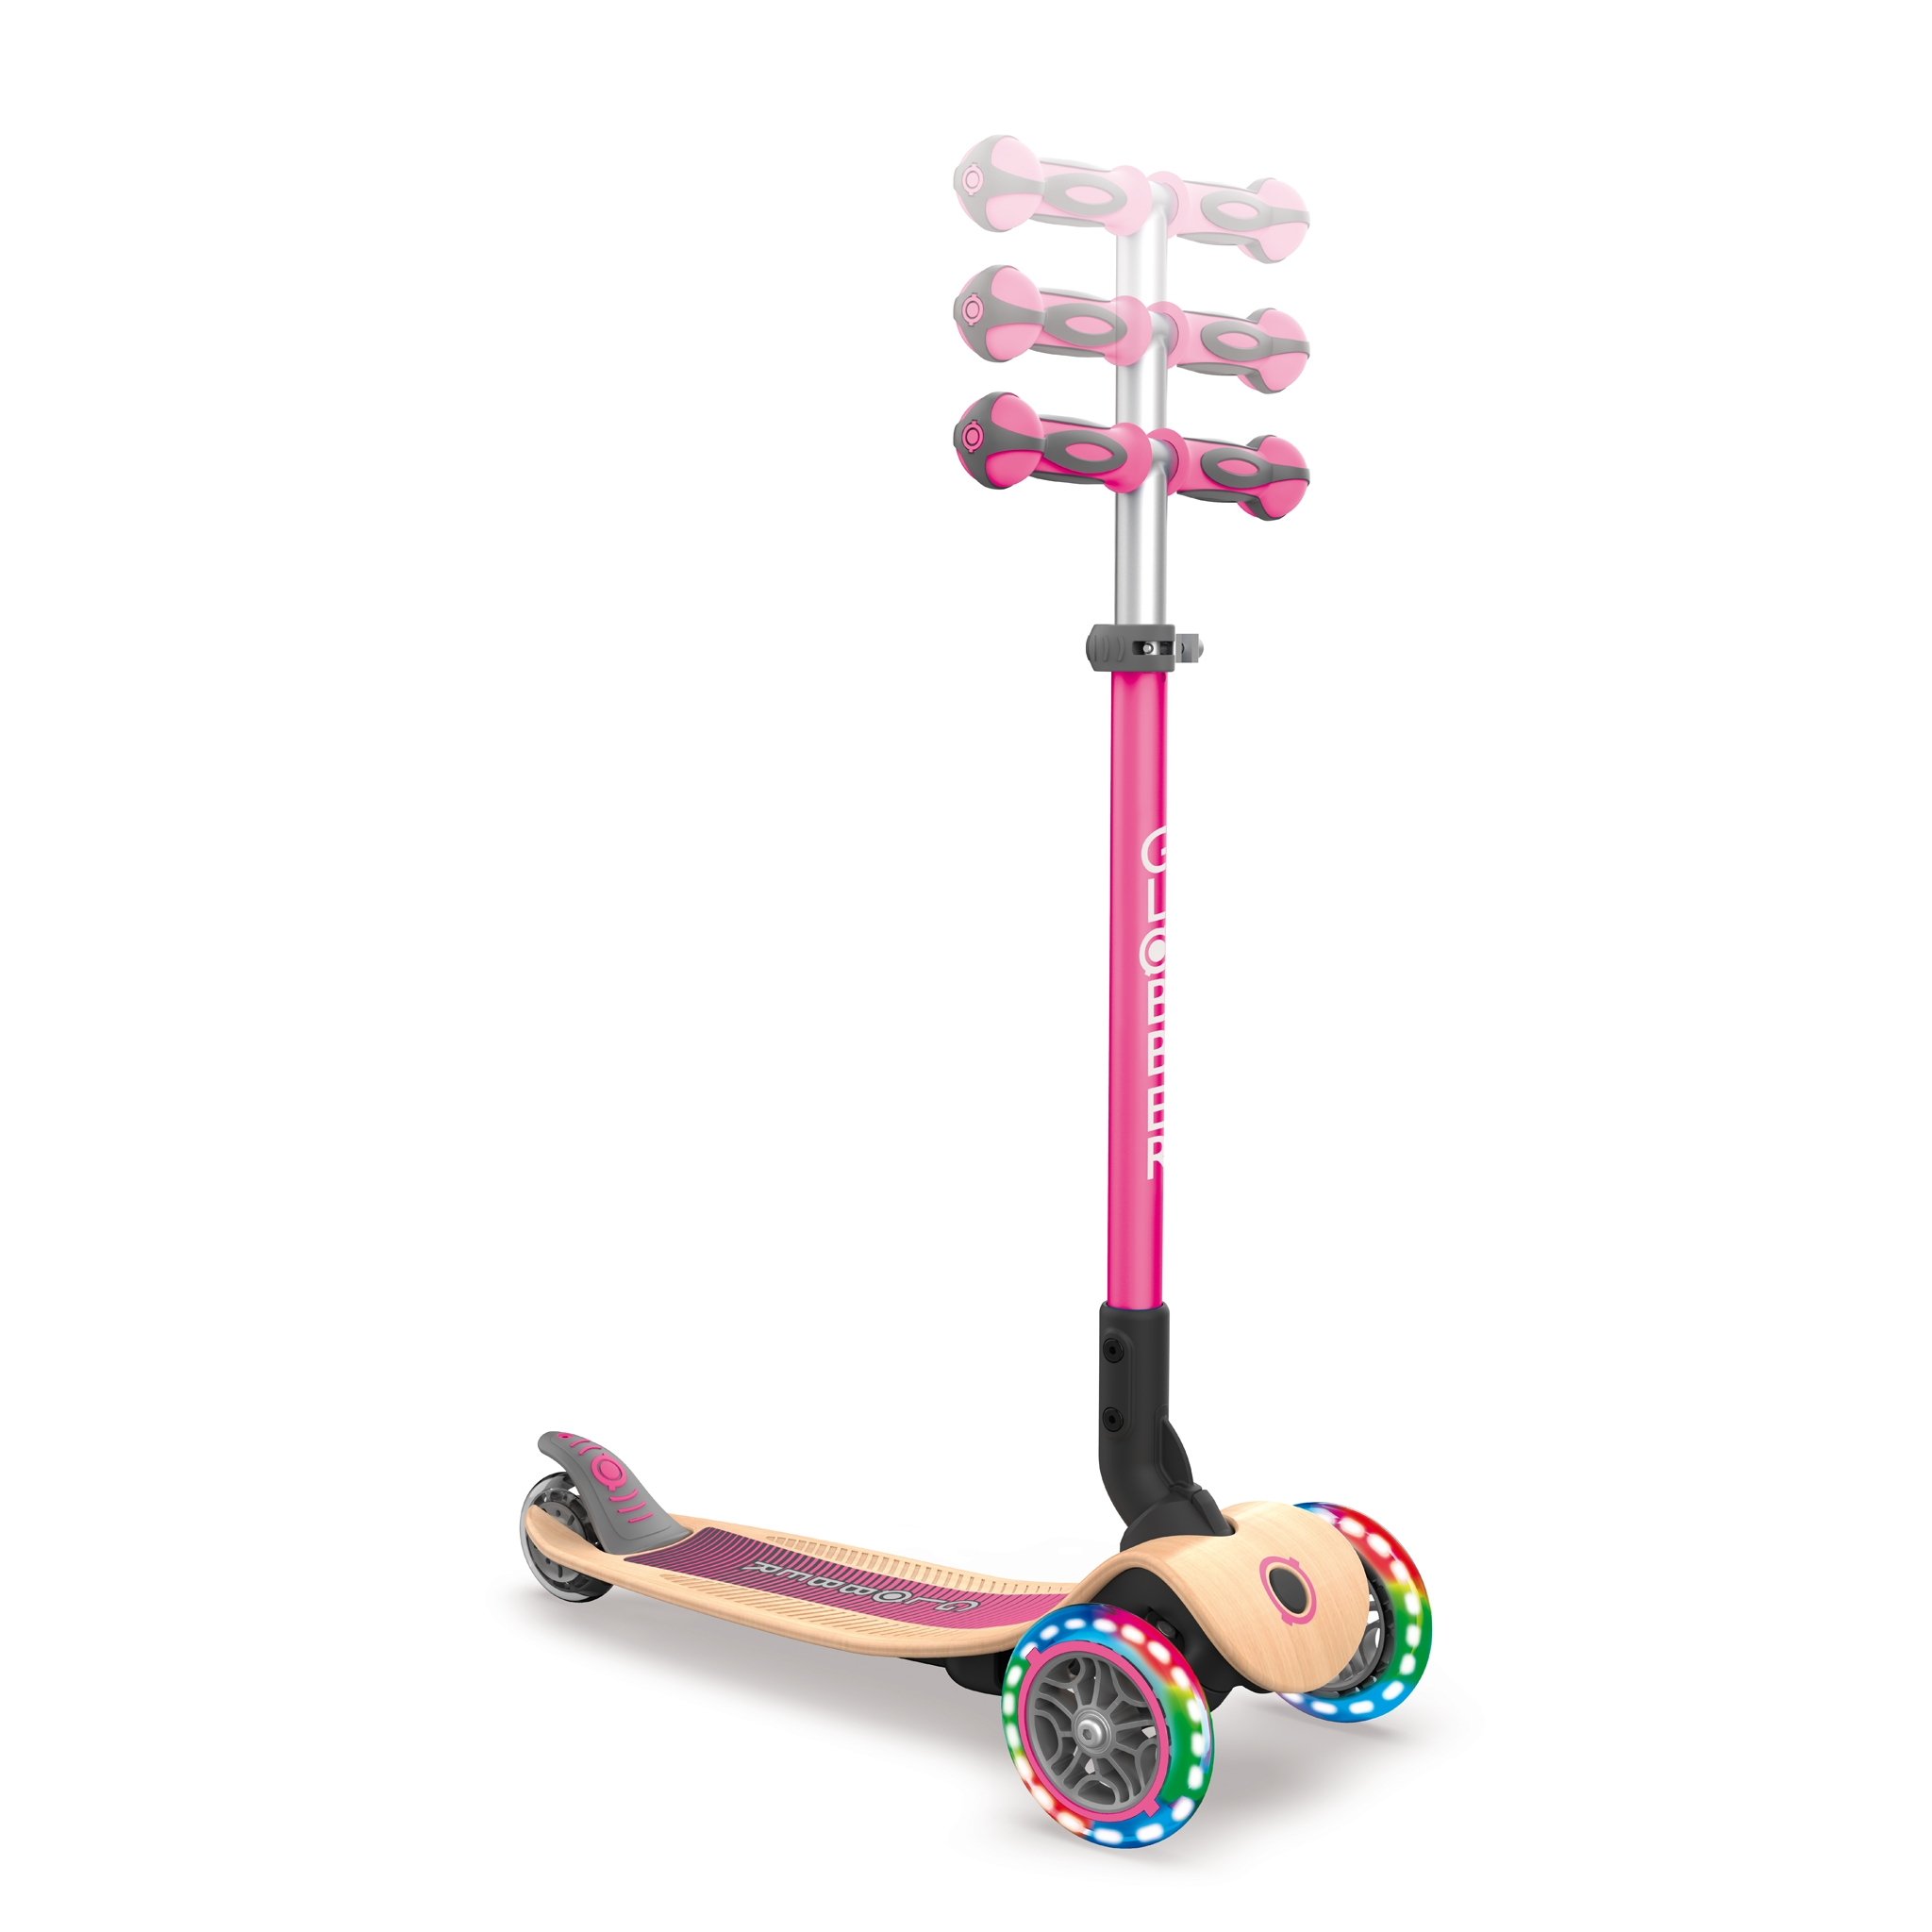 PRIMO-FOLDABLE-WOOD-LIGHTS-3-wheel-foldable-light-up-scooter-with-wooden-scooter-deck-and-3-height-adjustable-T-bar_deep-pink